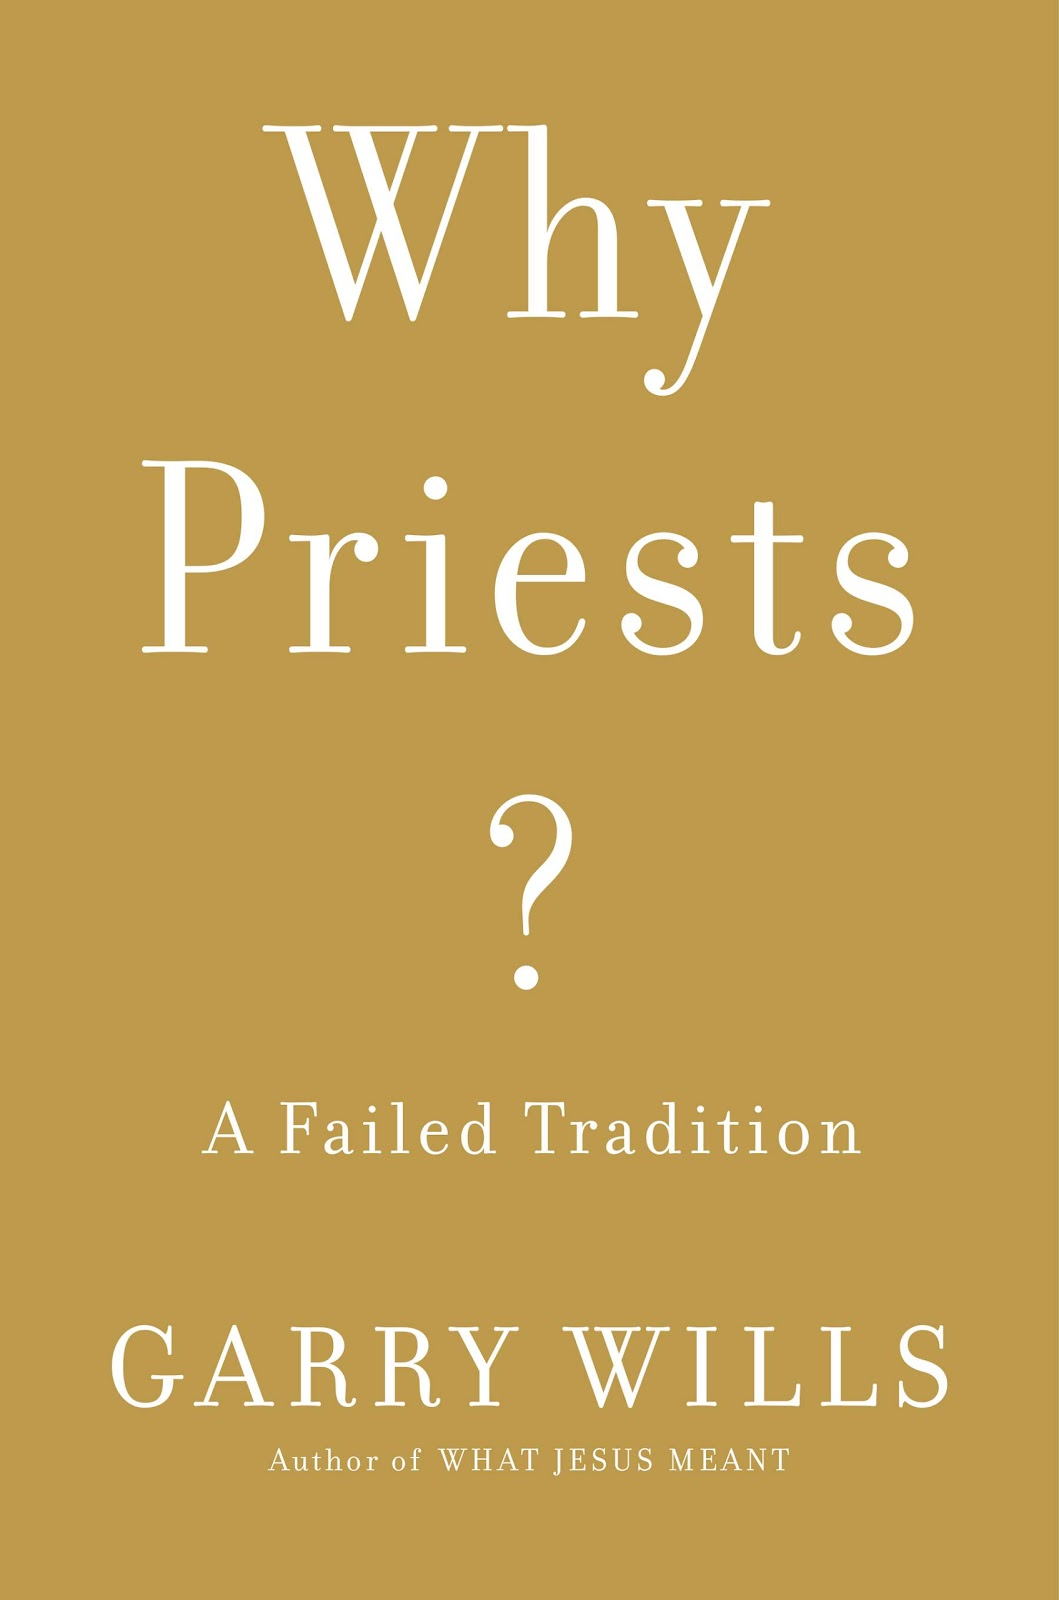 Michael Sean Winters Orders Garry Wills To Go Away, And I Order Wills's Book  Why Priests? In Response